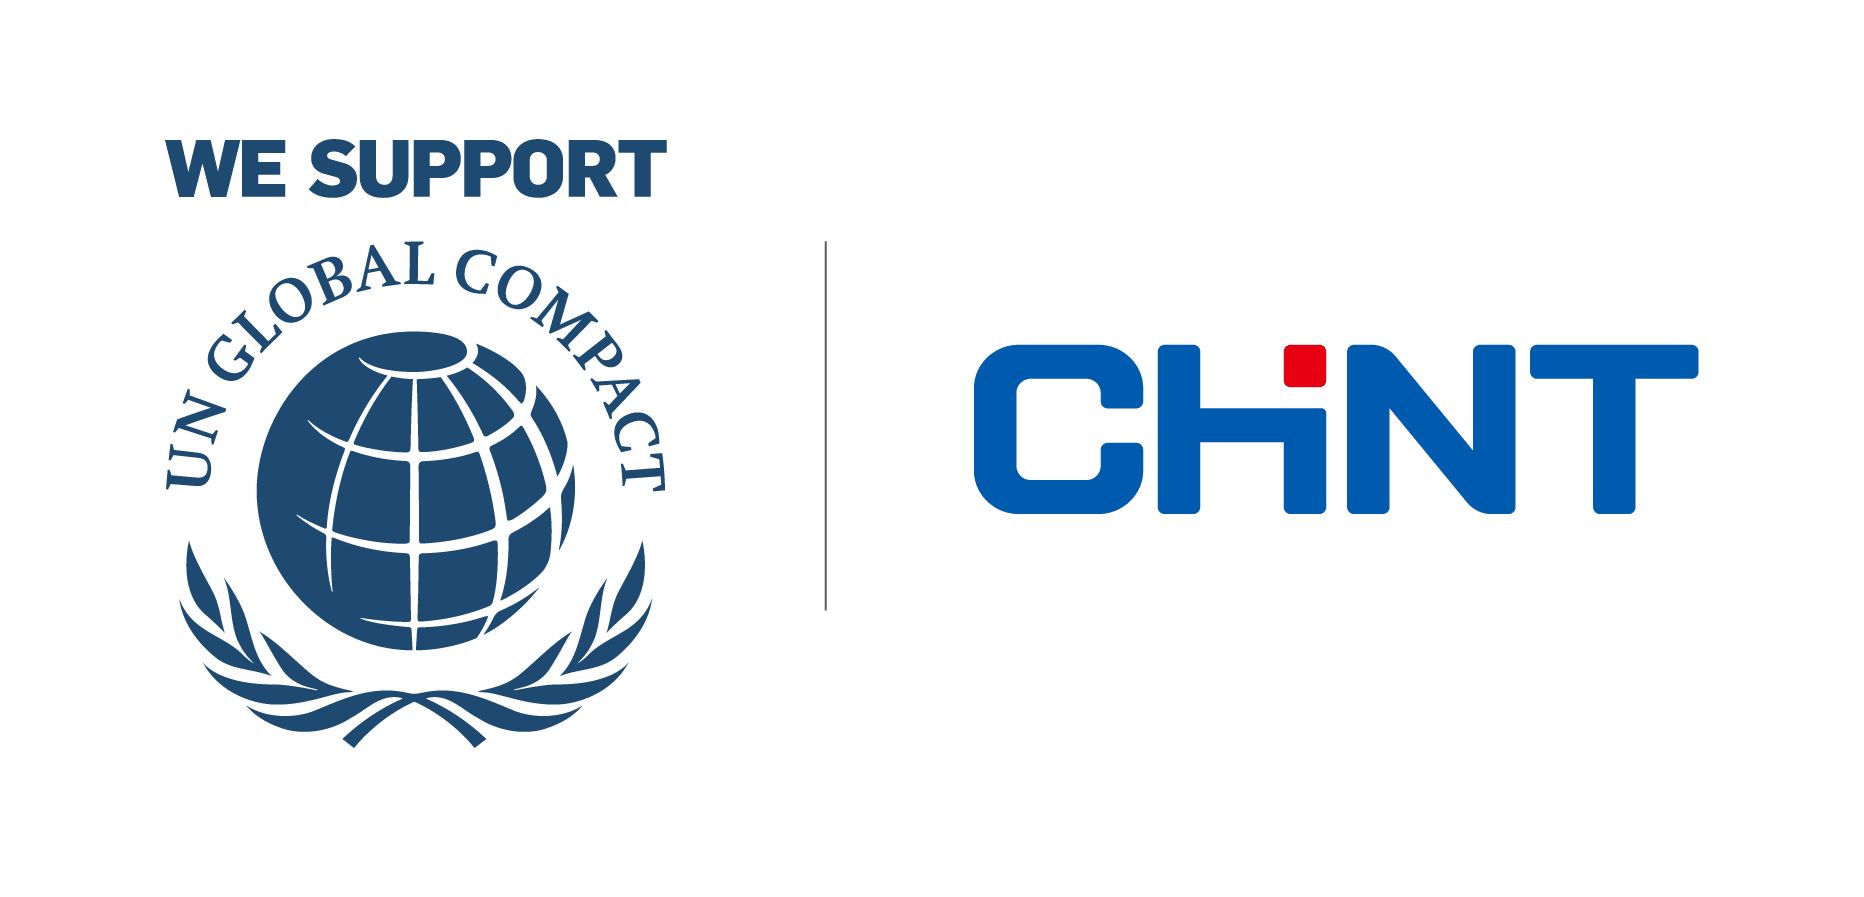 Chint Joins the United Nations Global Compact